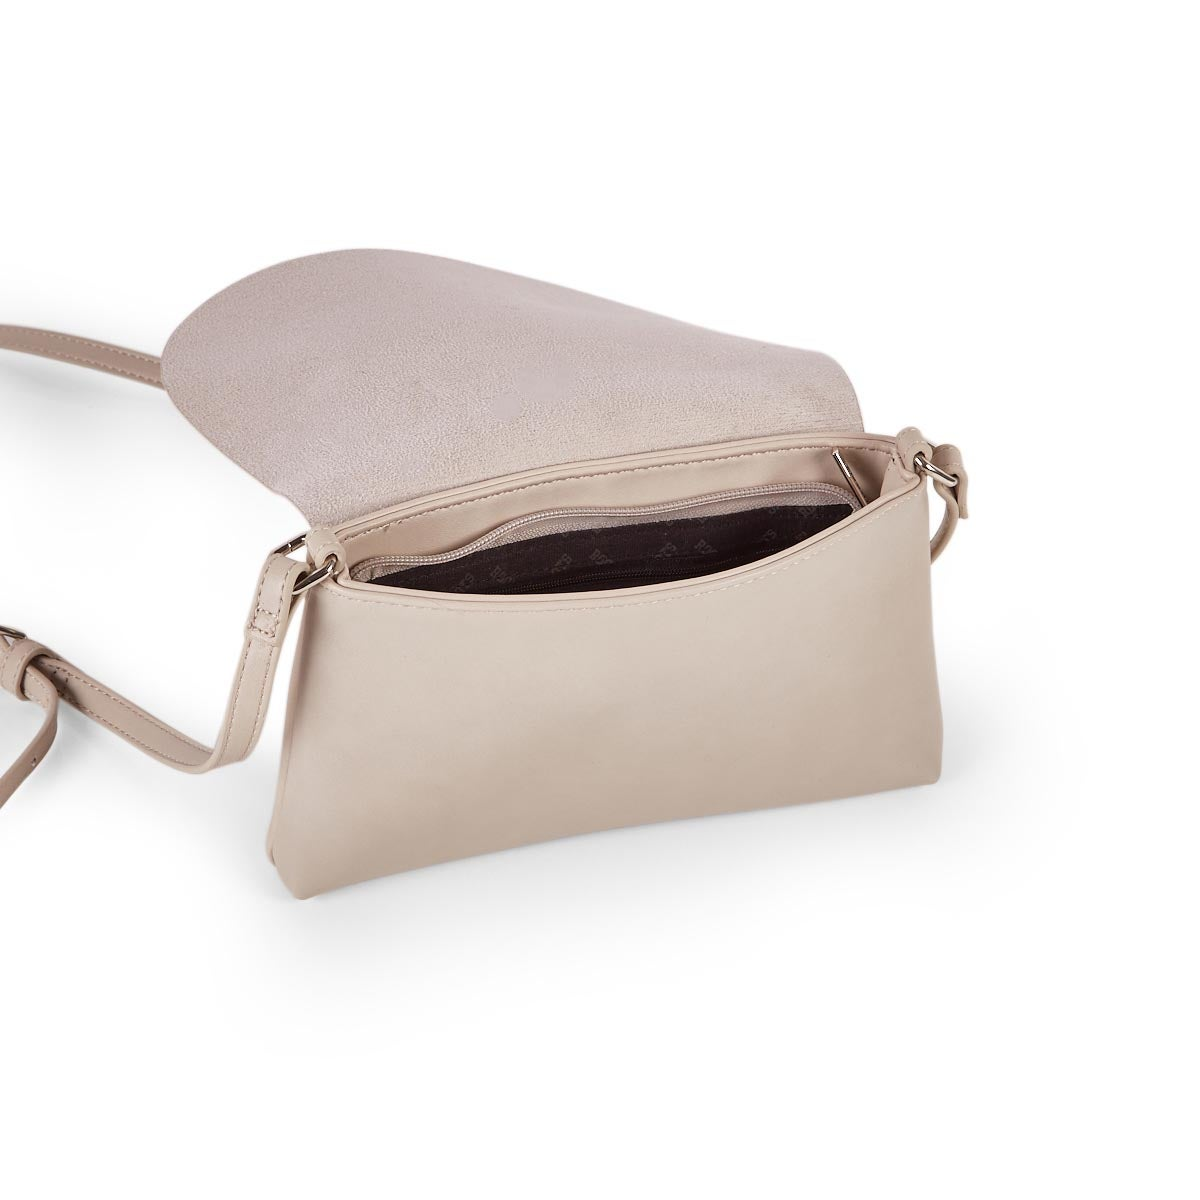 Lds Roots73 ivory front flap crossbody